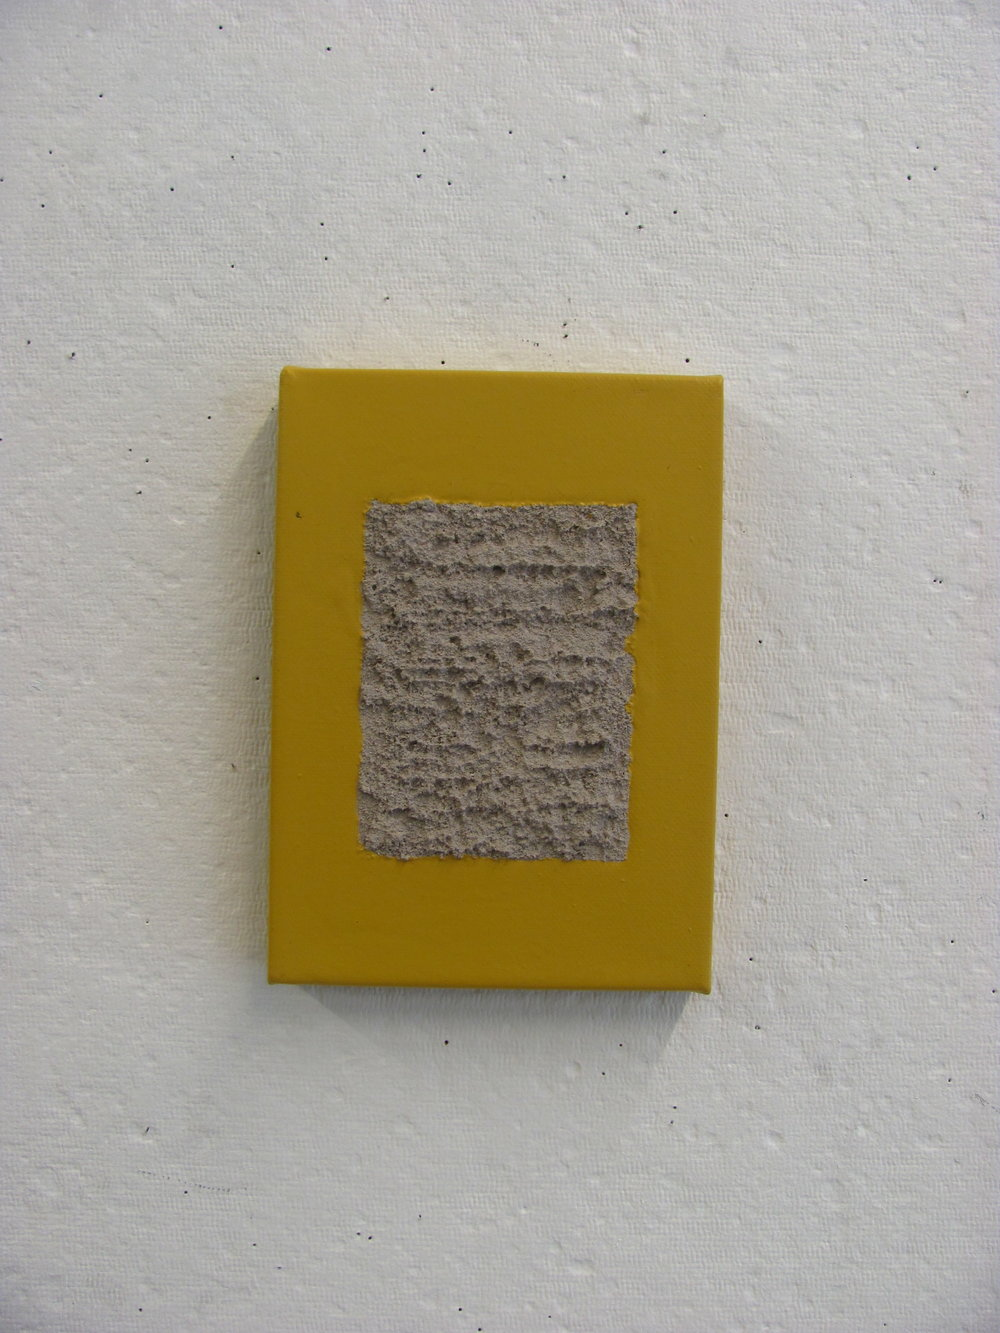 "Yellow pour around sandy grey, 5""x7"""